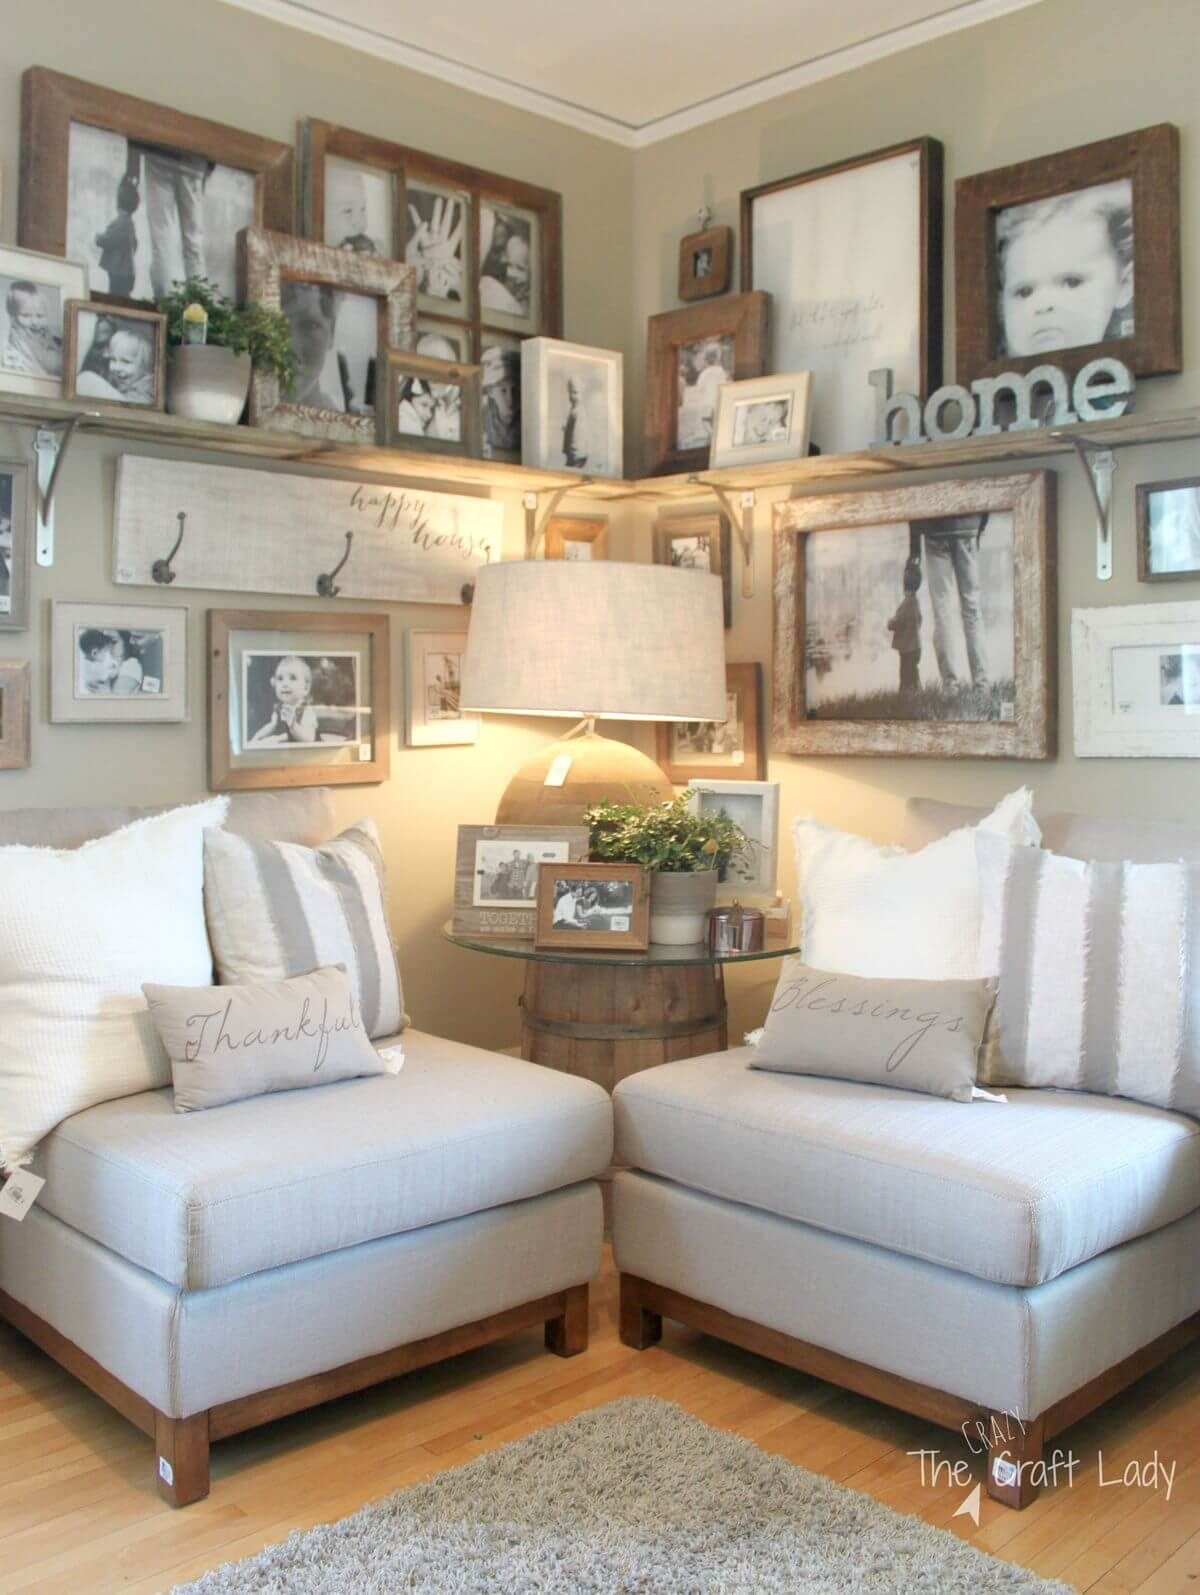 creative ideas to decorate above the sofa also family photo displays rh pinterest